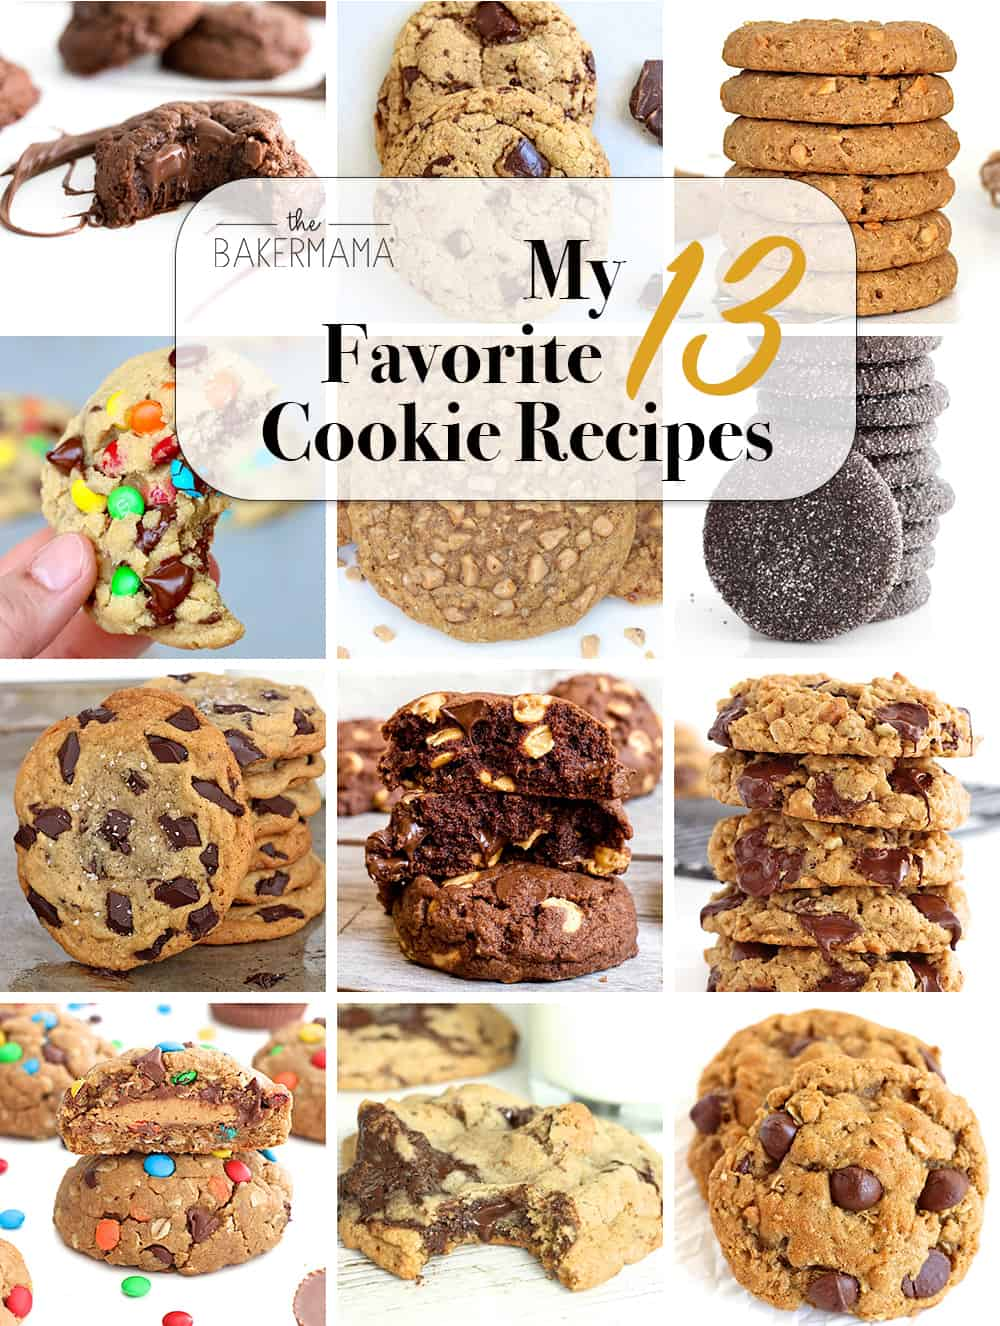 13 Favorite Cookie Recipes by The BakerMama